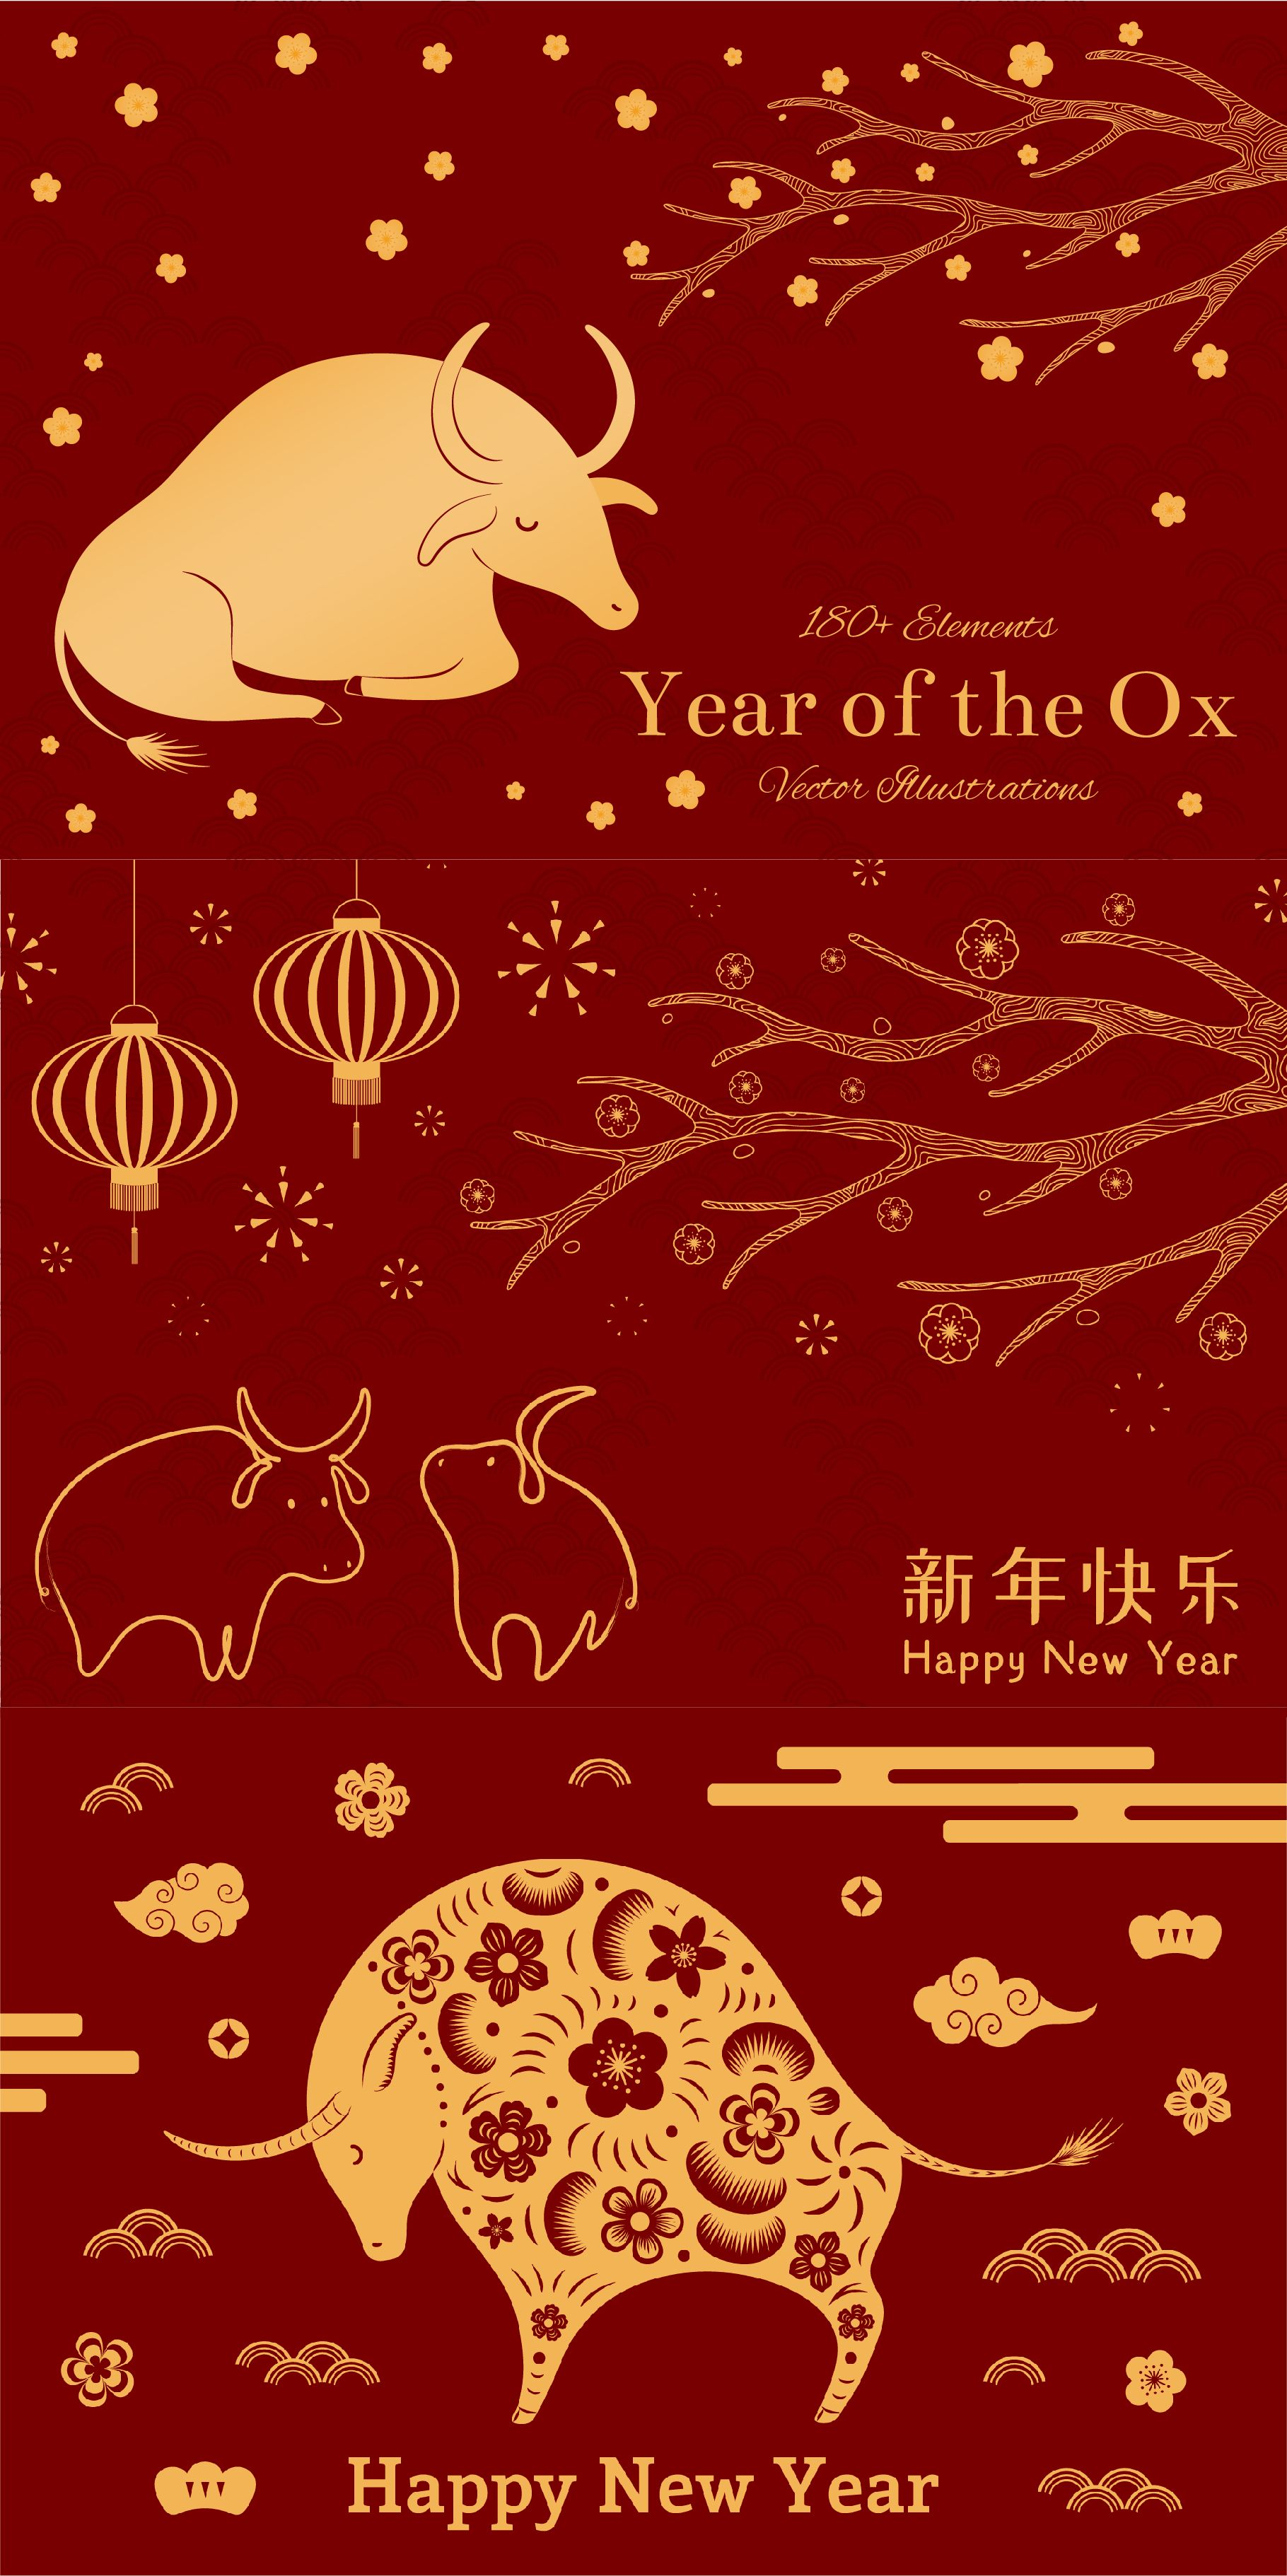 Year of the Ox, 2021 Lunar New Year Vector Graphics by sceptical cactus